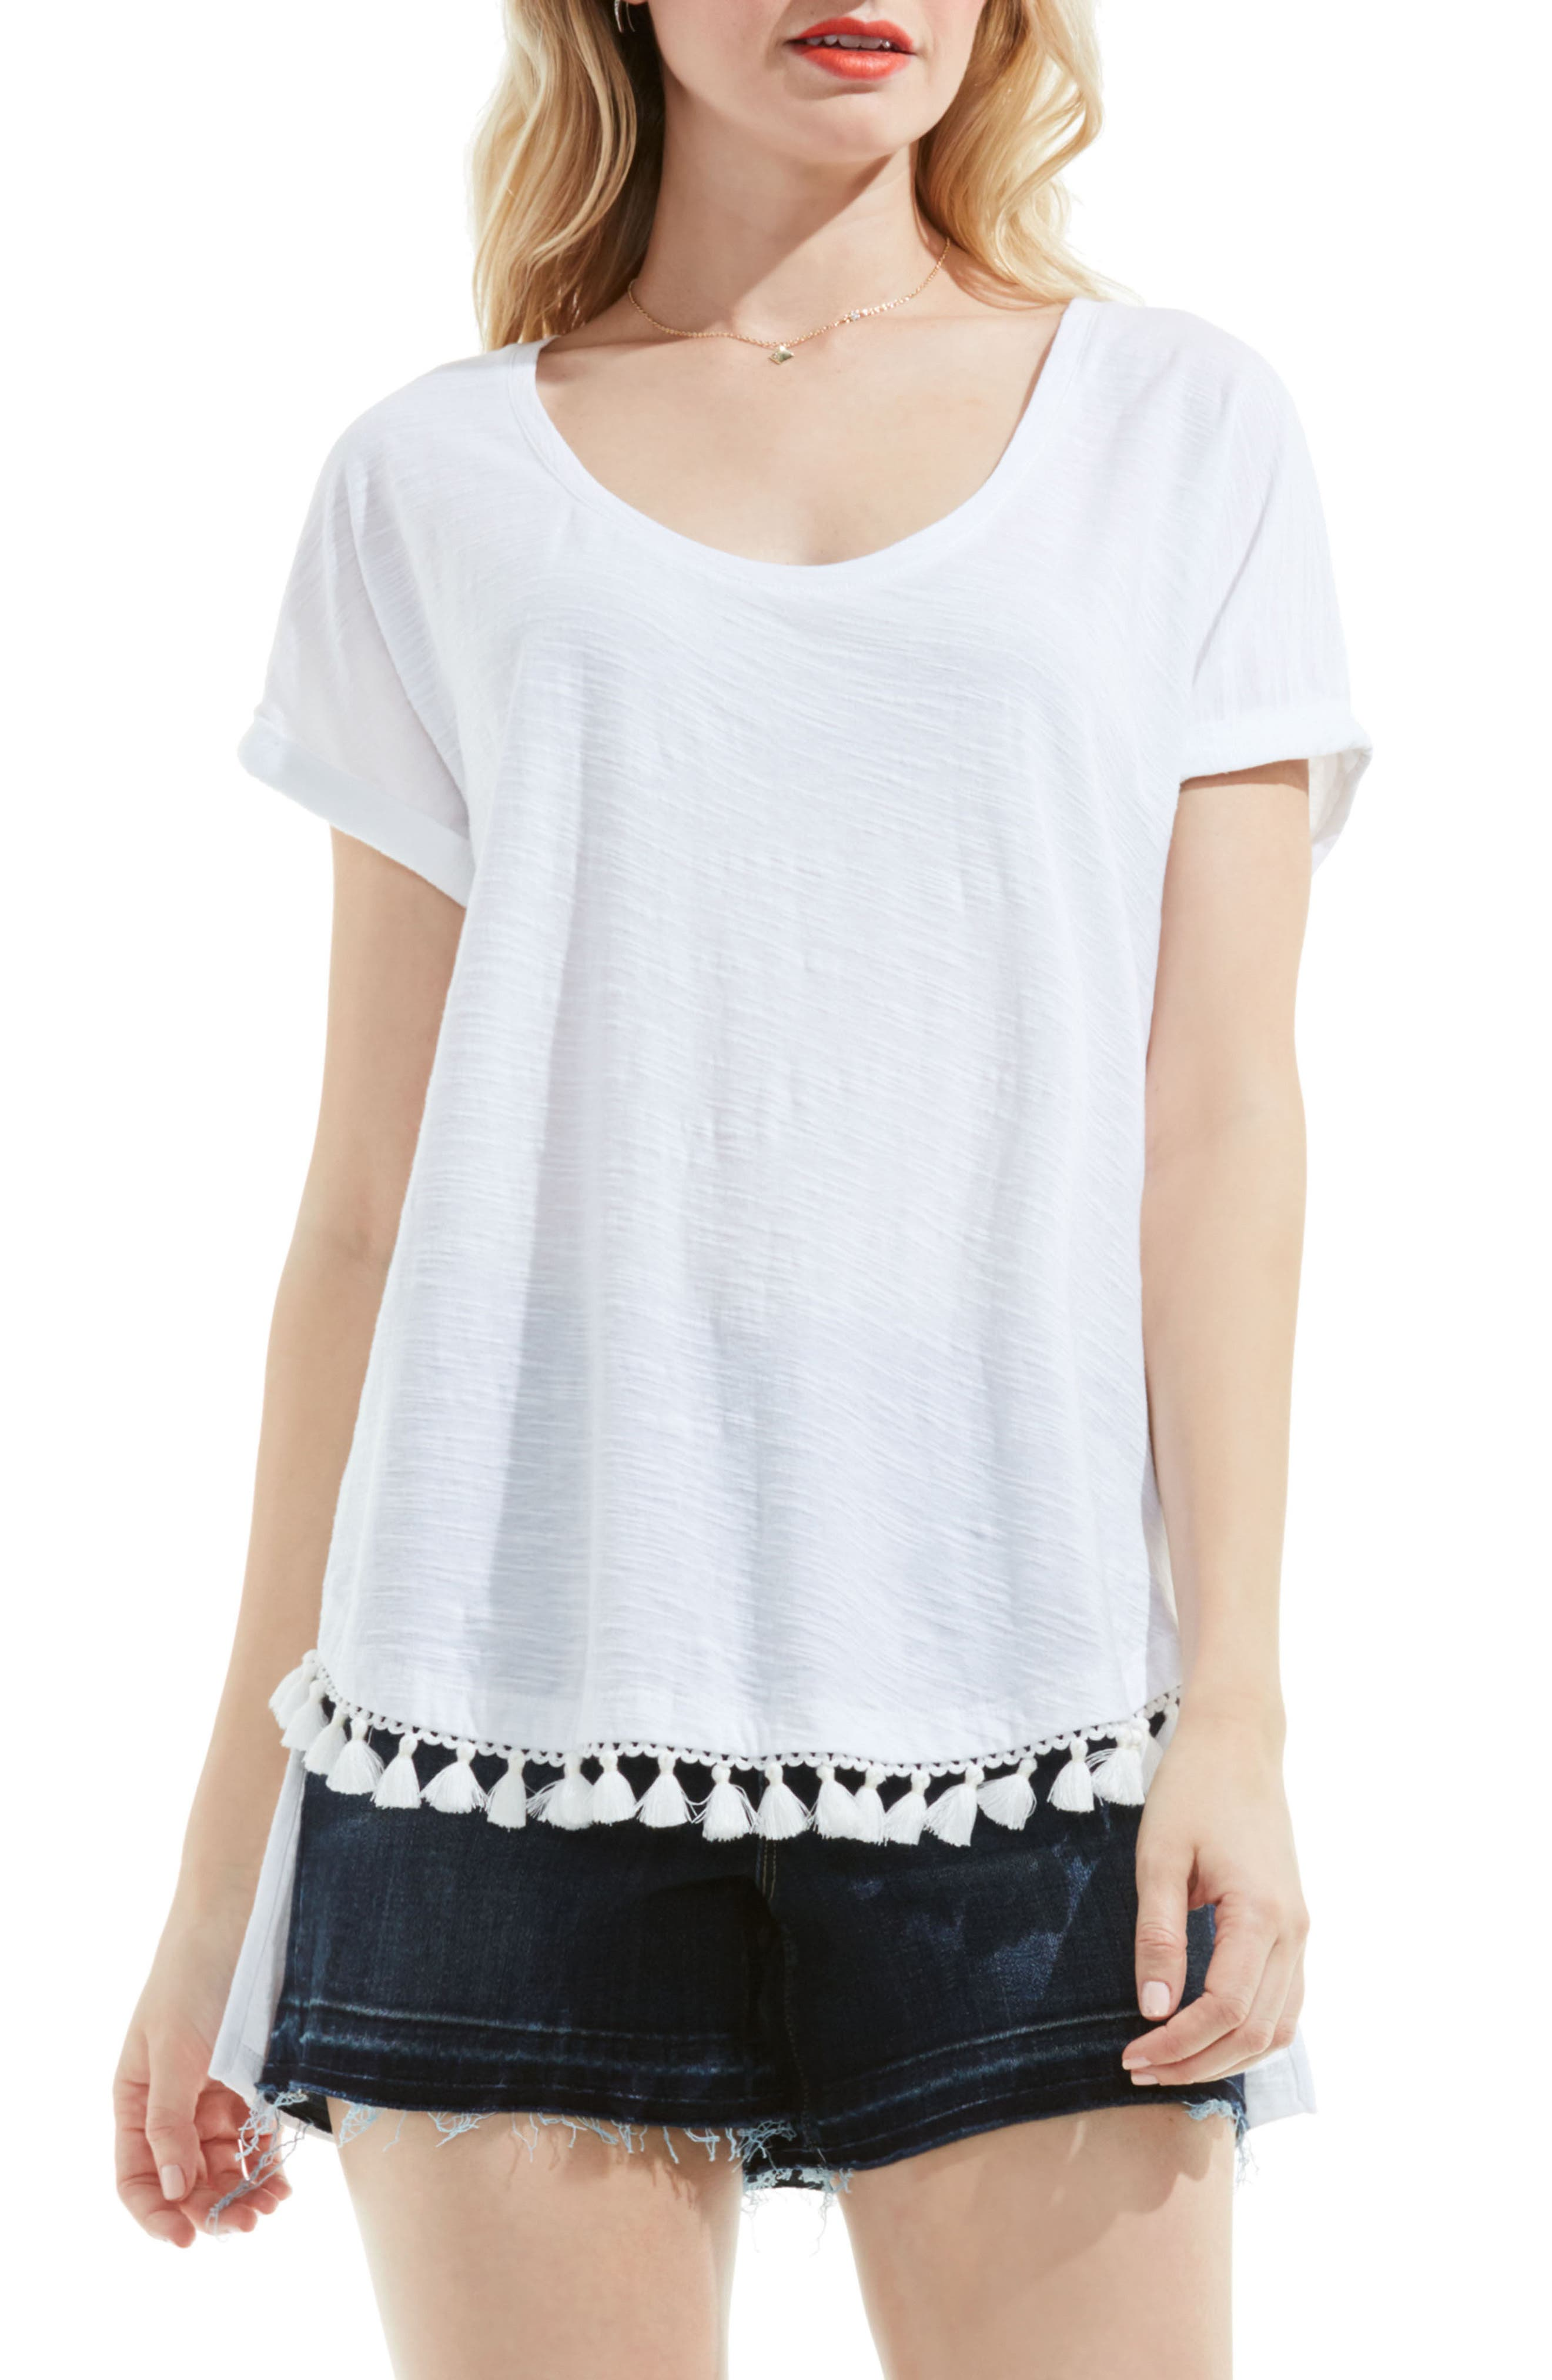 Alternate Image 1 Selected - Two by Vince Camuto Tassel Trim Cotton Tee